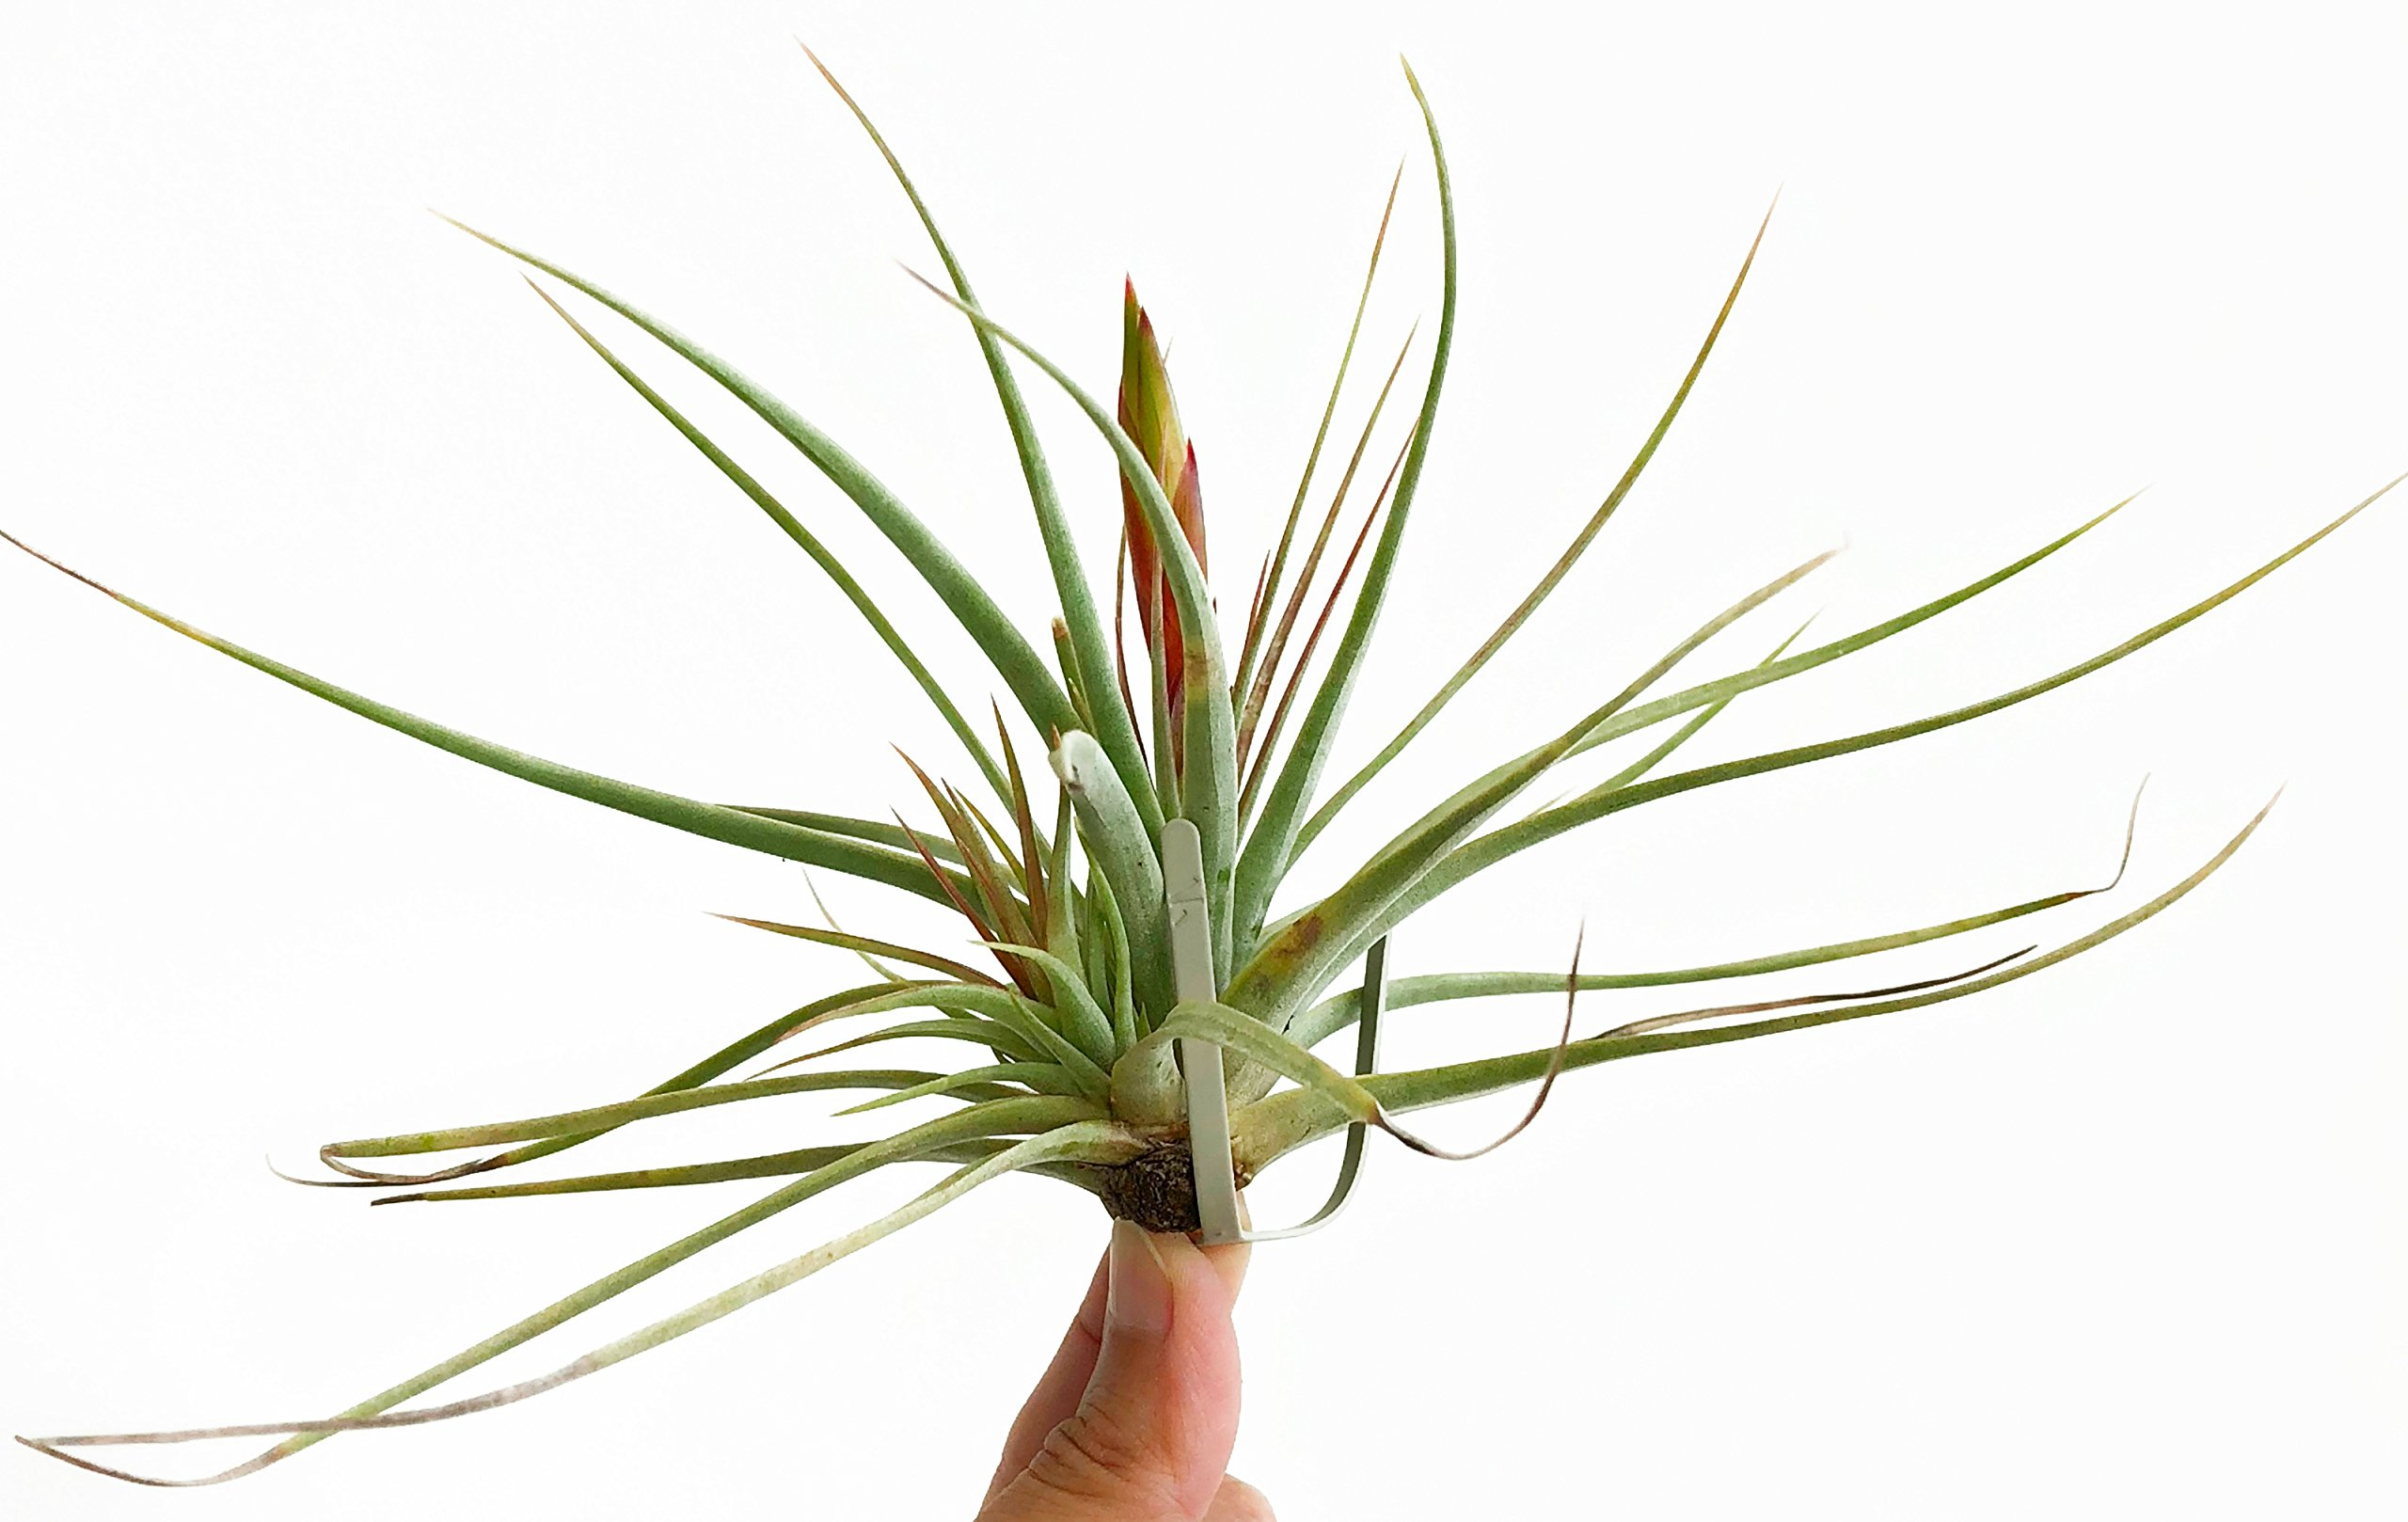 ArtAK Wall Planter Air Plant Holder Wall Hanging AIR KNOTS | 5 Wall Mount Planters for Large Air Plant & Vanda Display | Vertical Garden Modern Hanging Planter | Hanging Air Plants and Holders Grey by ArtAK (Image #9)